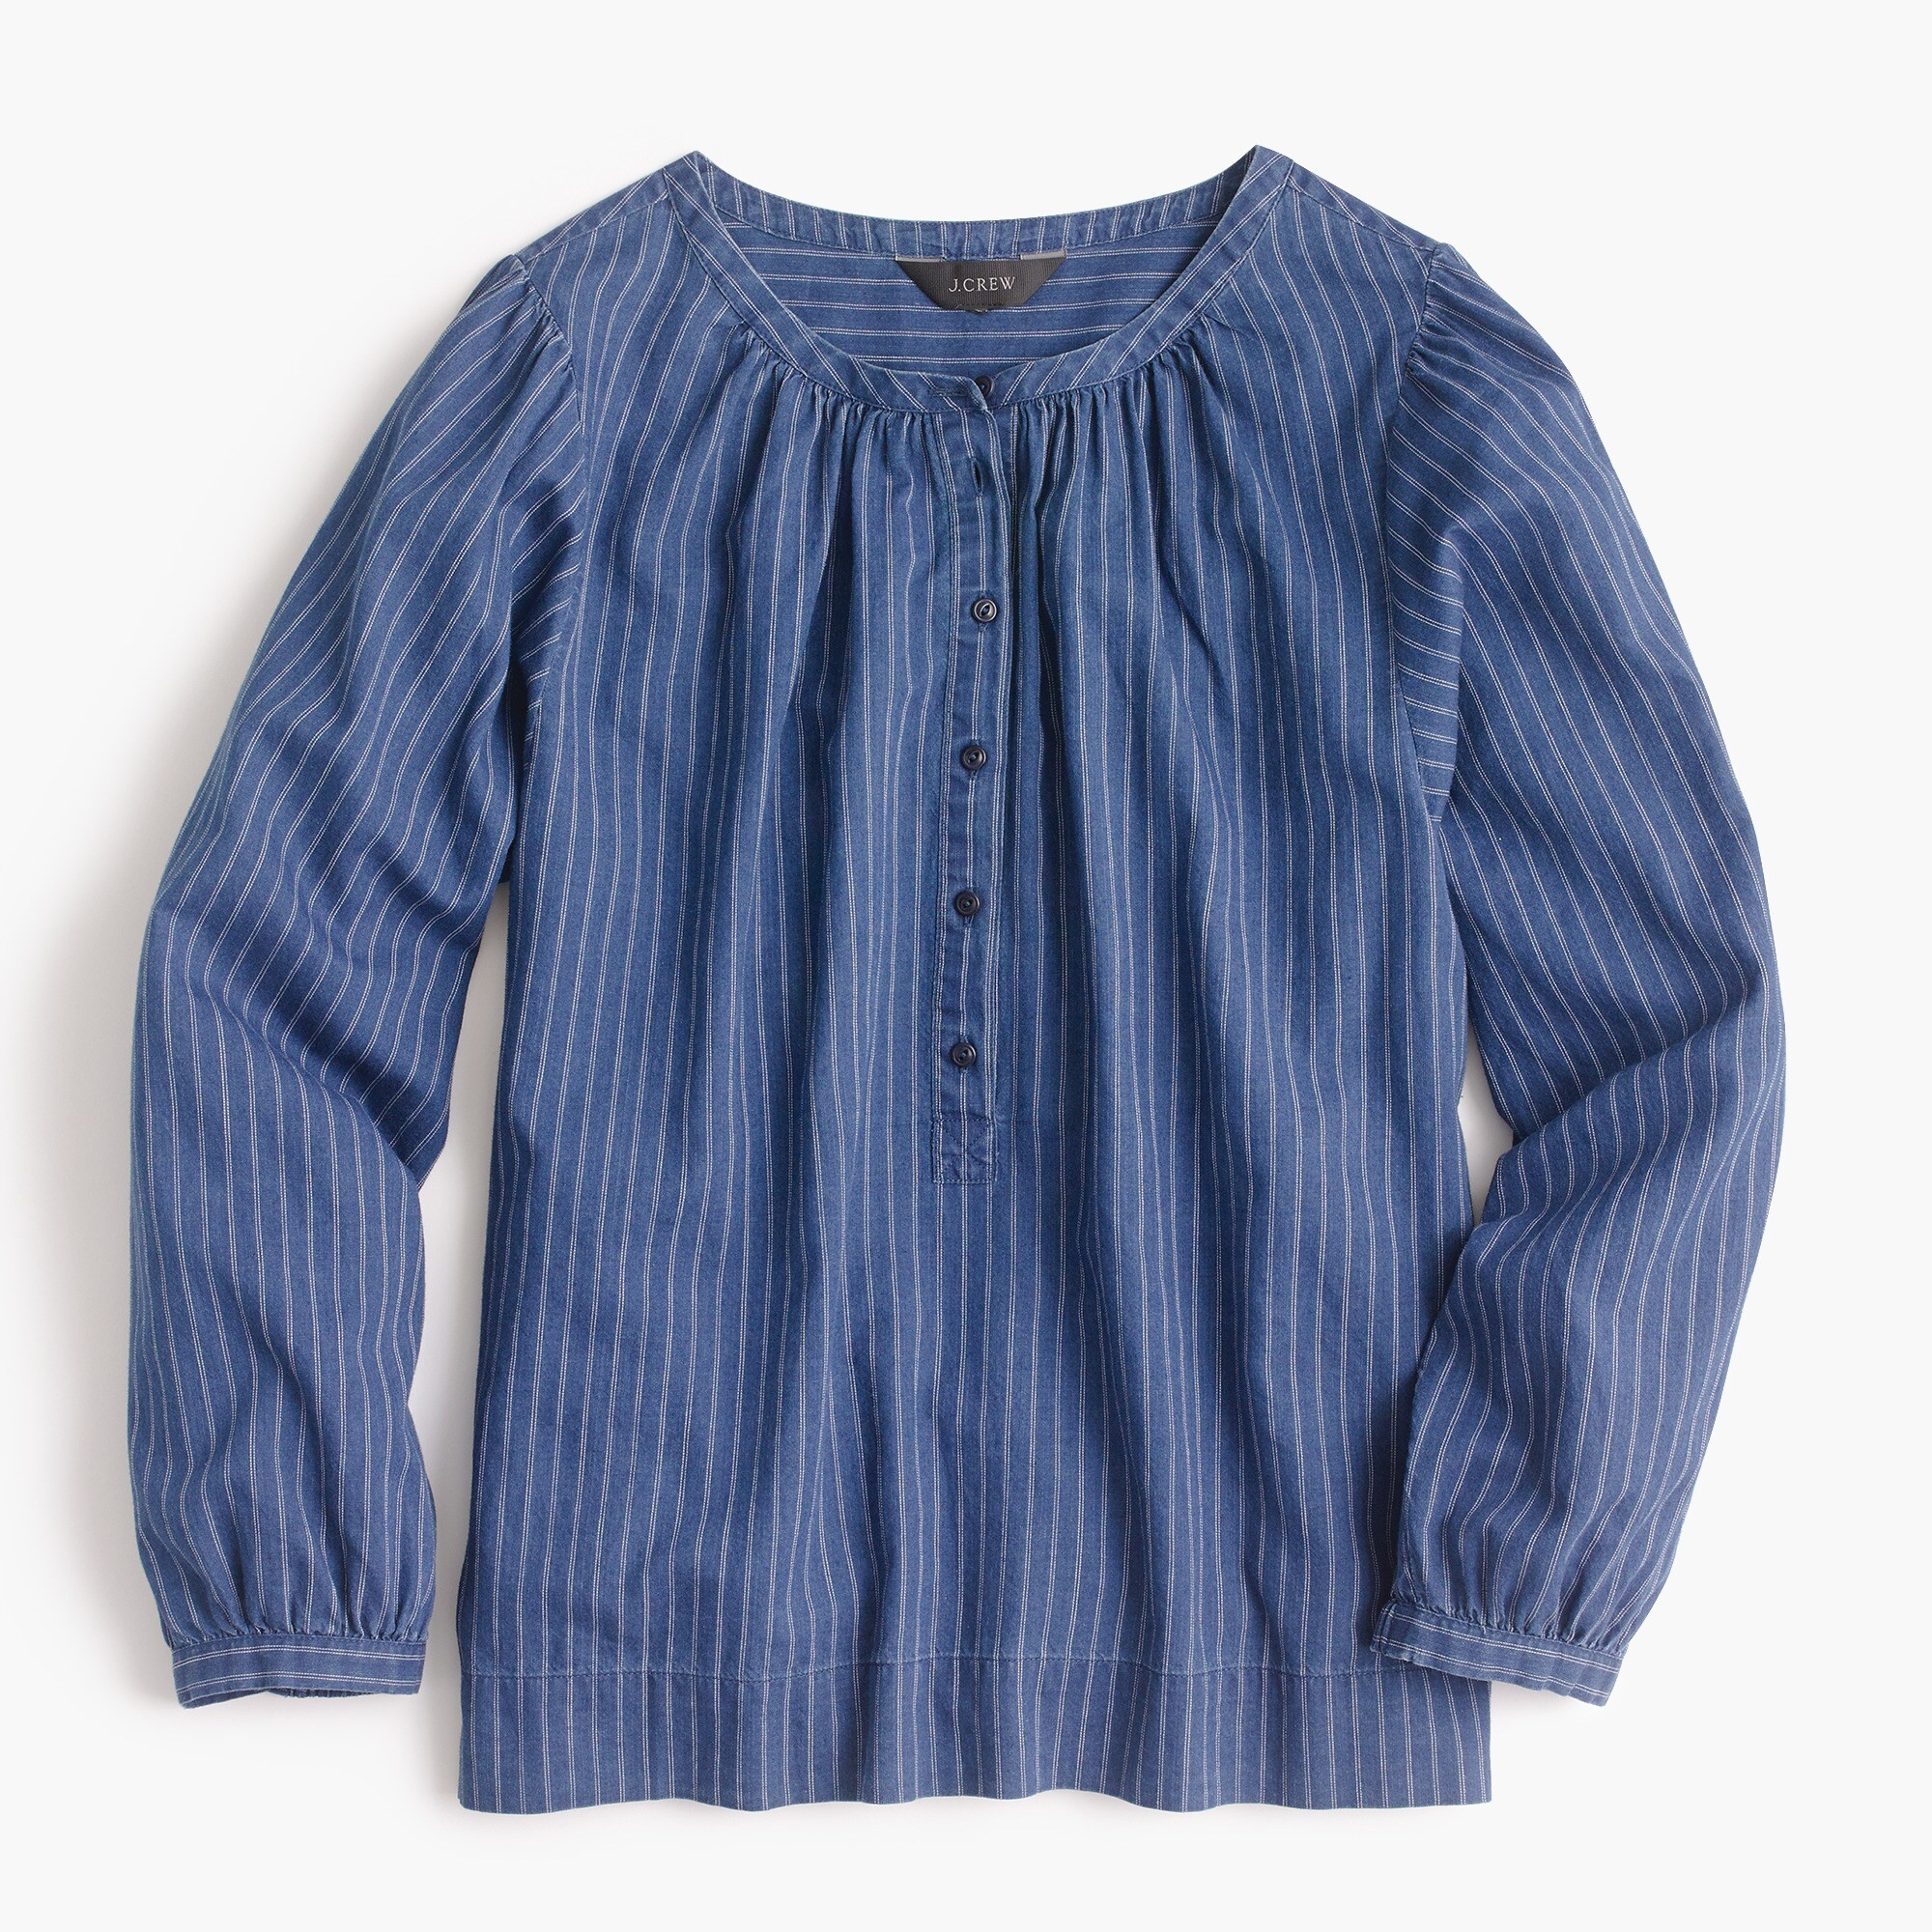 Image 4 for Indigo gauze popover shirt